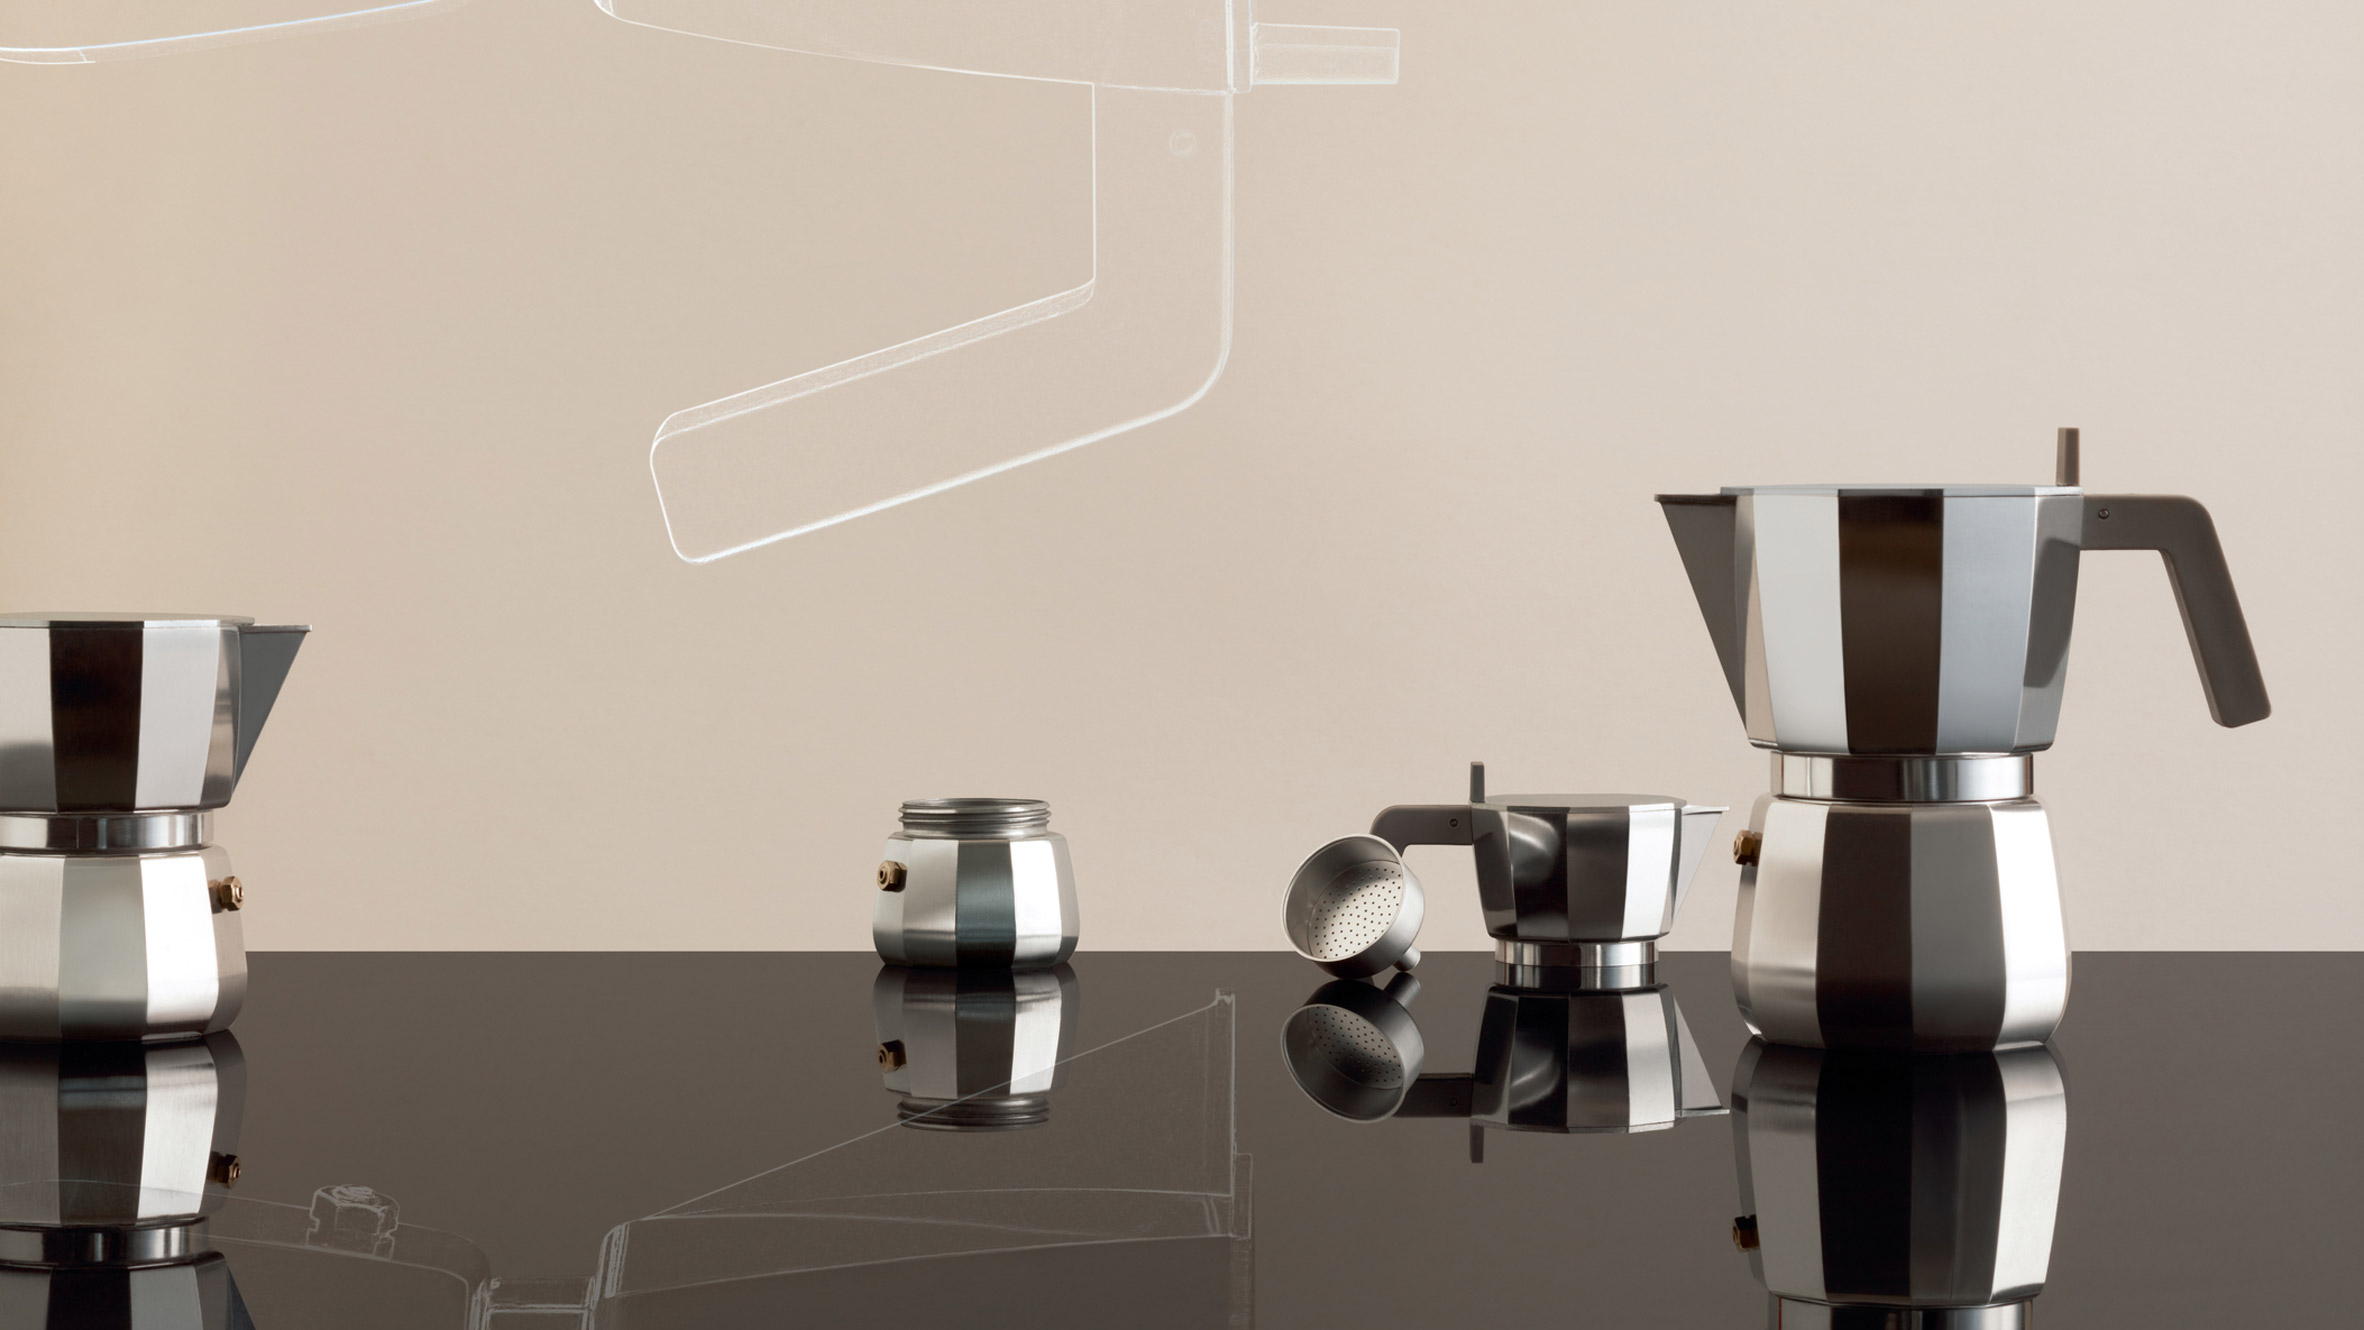 Alessi Espressokocher David Chipperfield Redesigns The Classic Moka Espresso Maker For